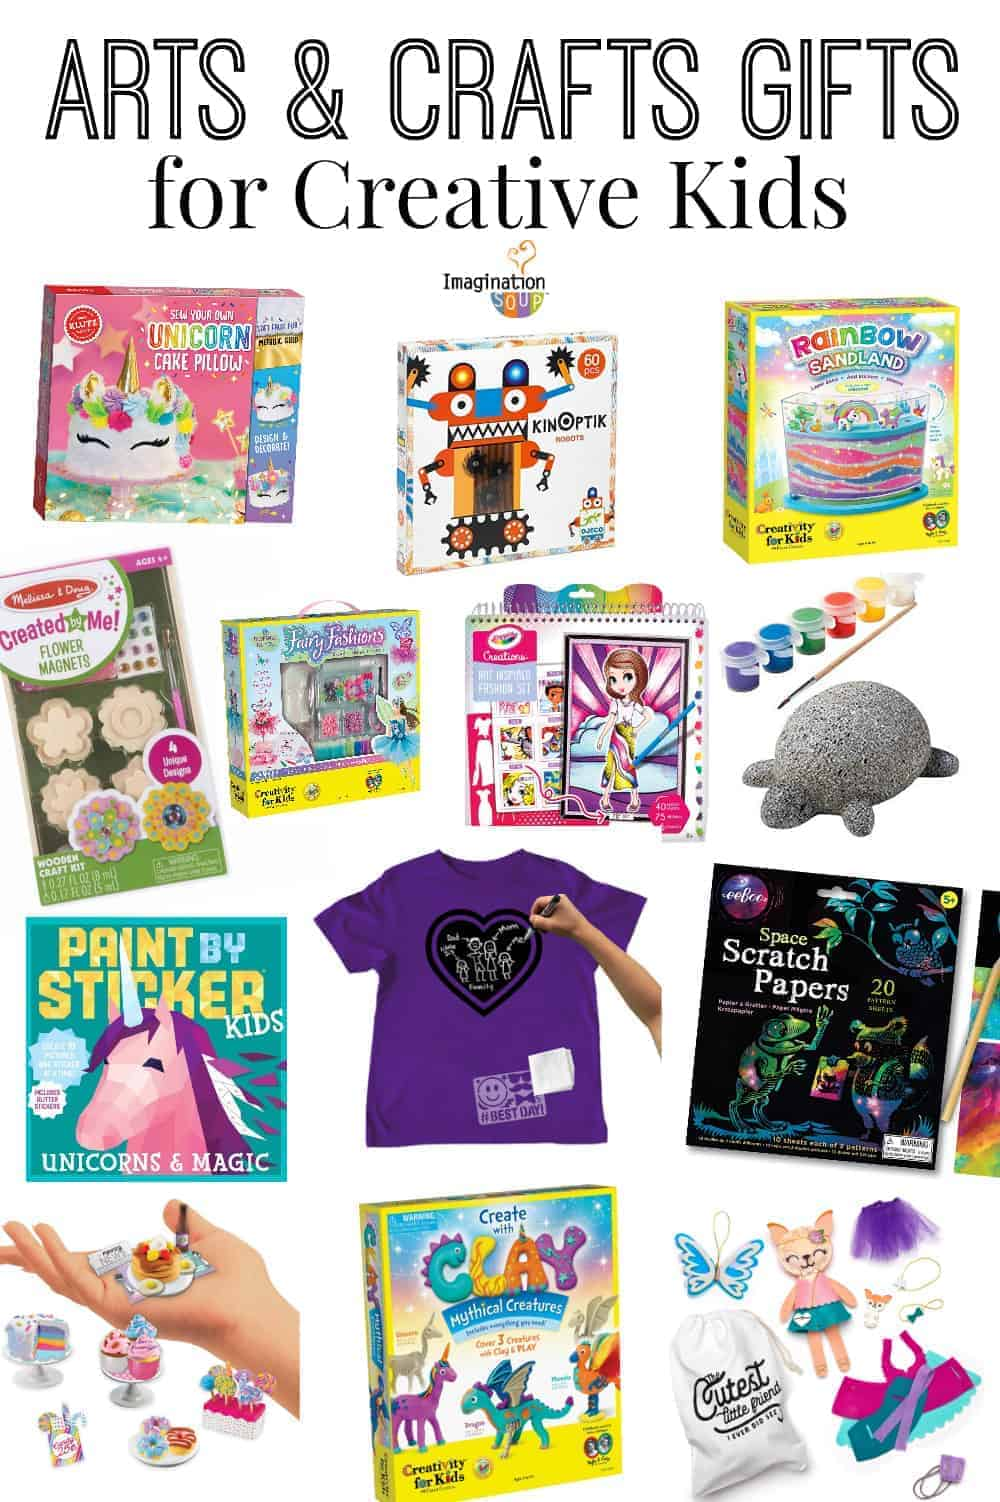 2019 Best Arts and Crafts Gifts for Creative Kids